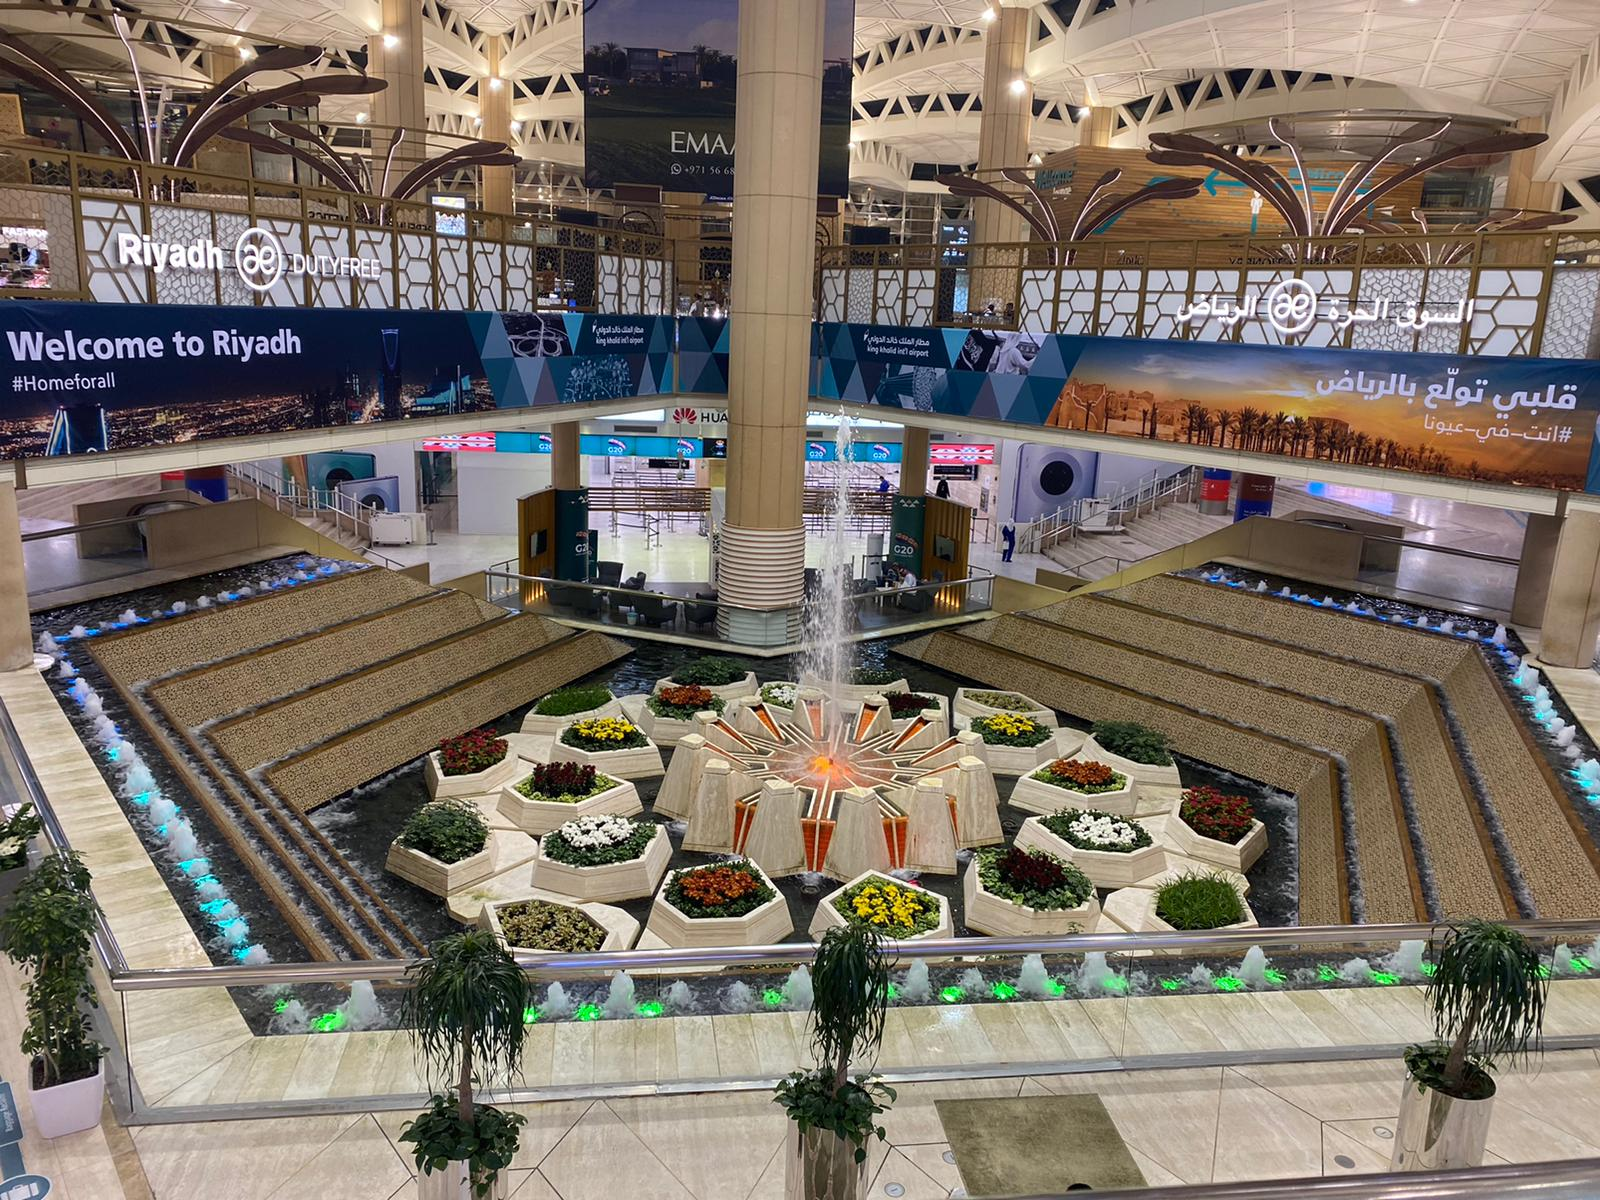 Big shopping mall in Riyadh, Saudi Arabia